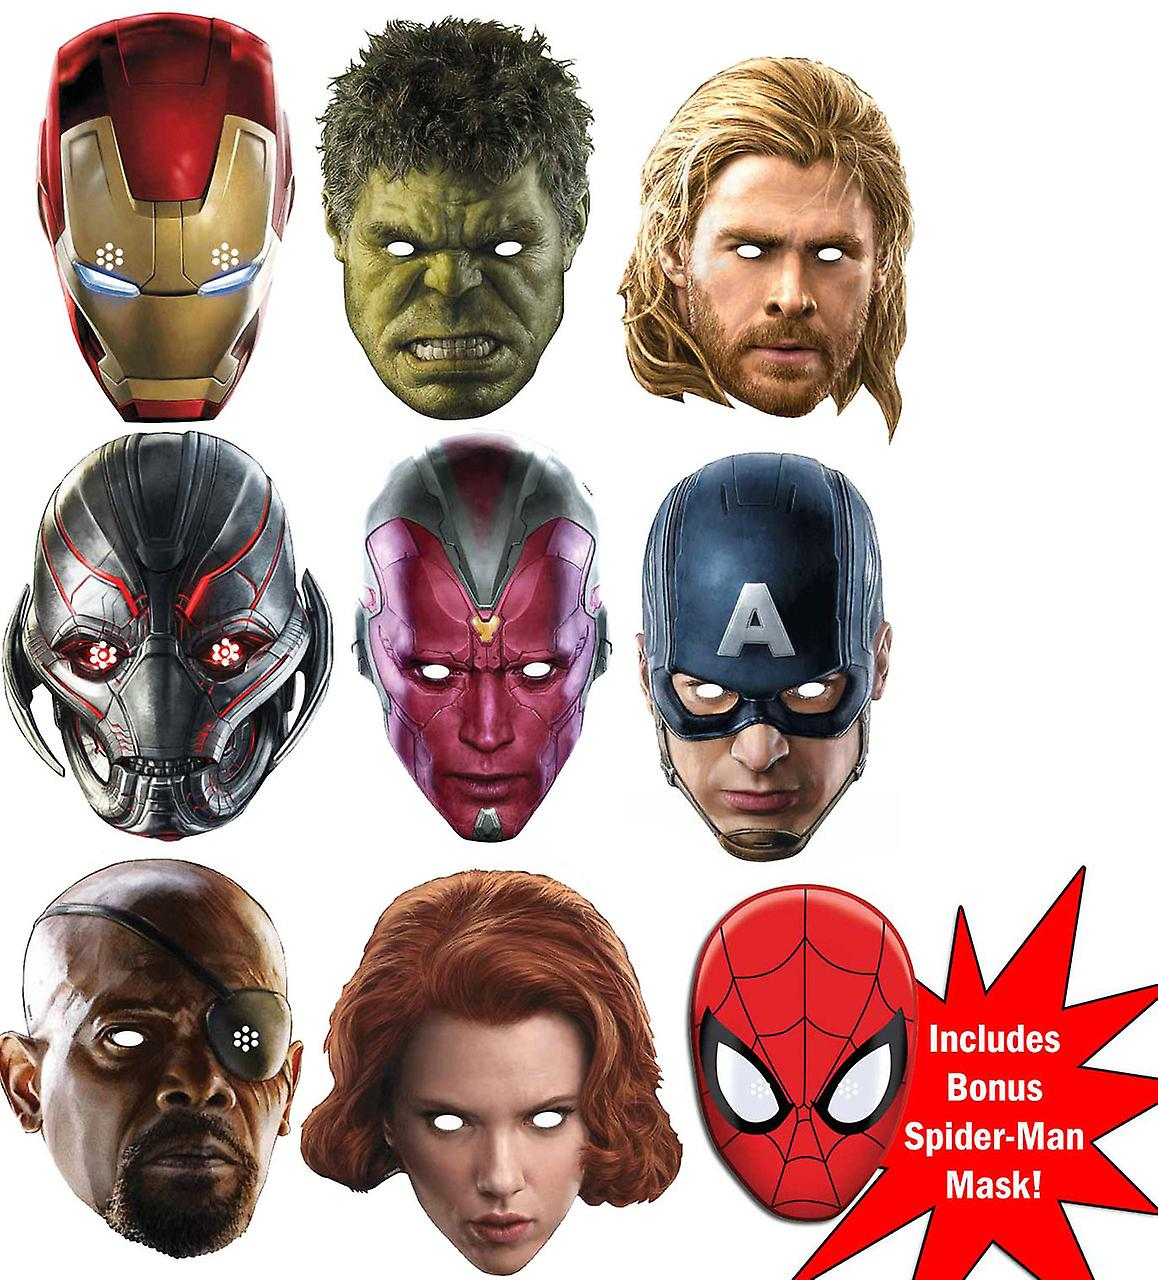 Marvel's Avengers Age of Ultron Super Hero Set of 9 Variety Face Mask Pack